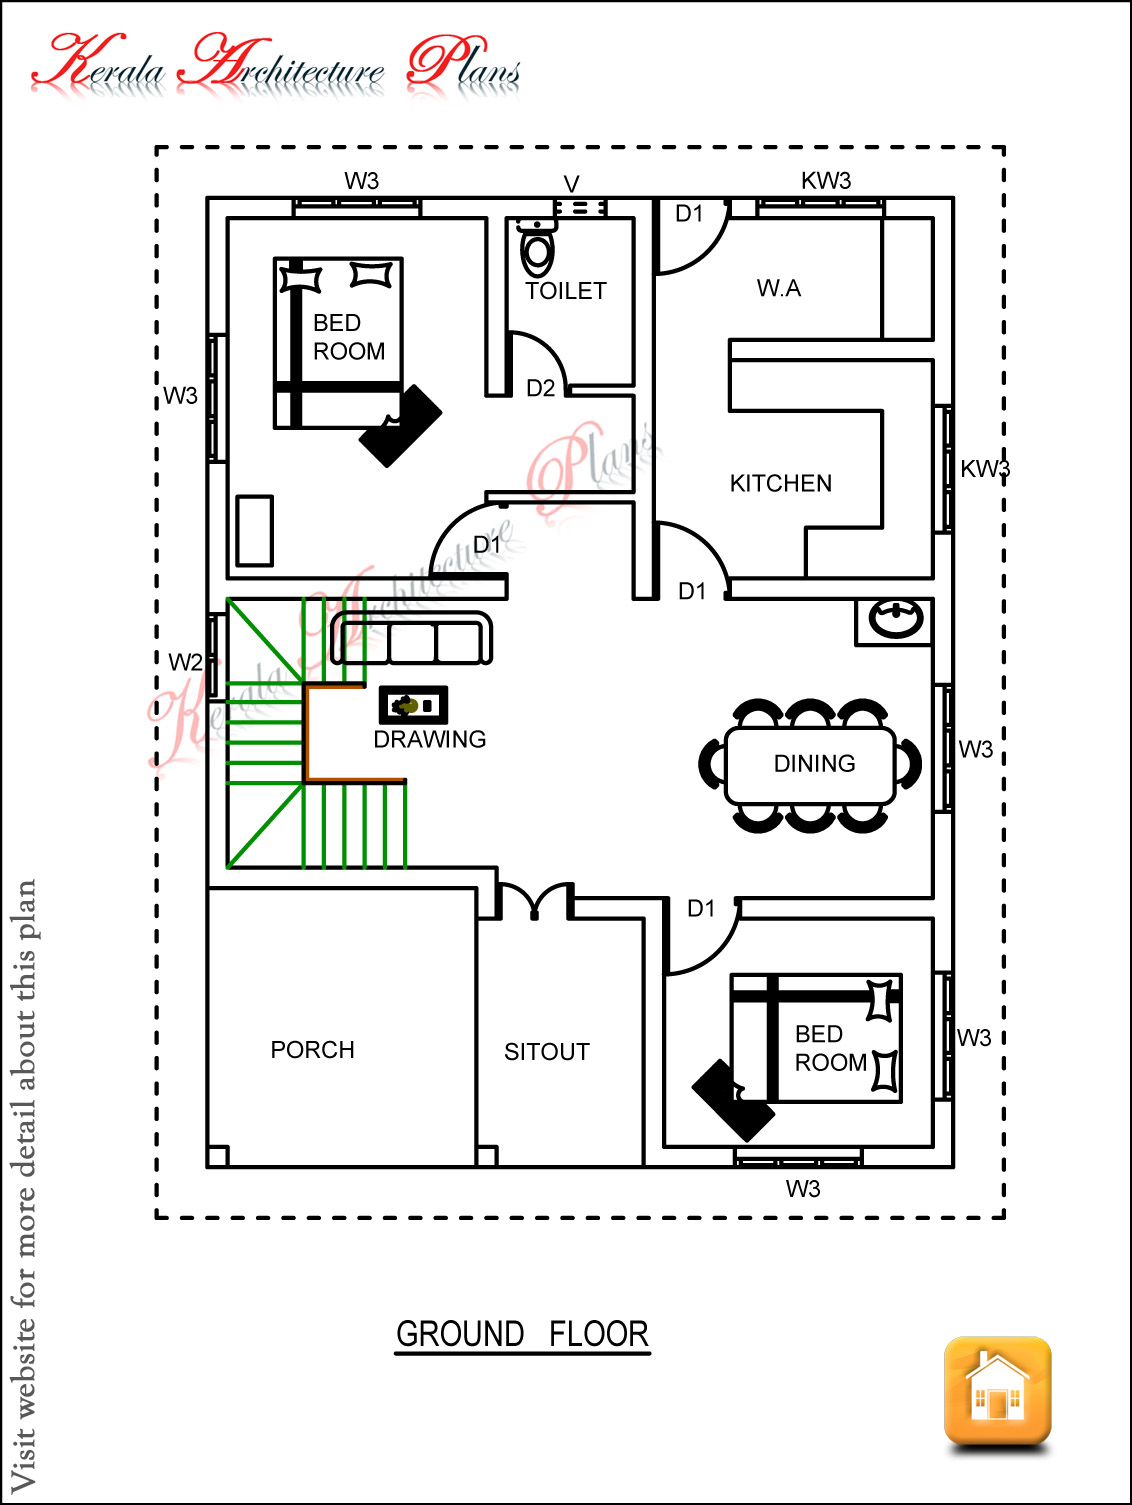 Three bedroom house plan architecture kerala Plan your home design